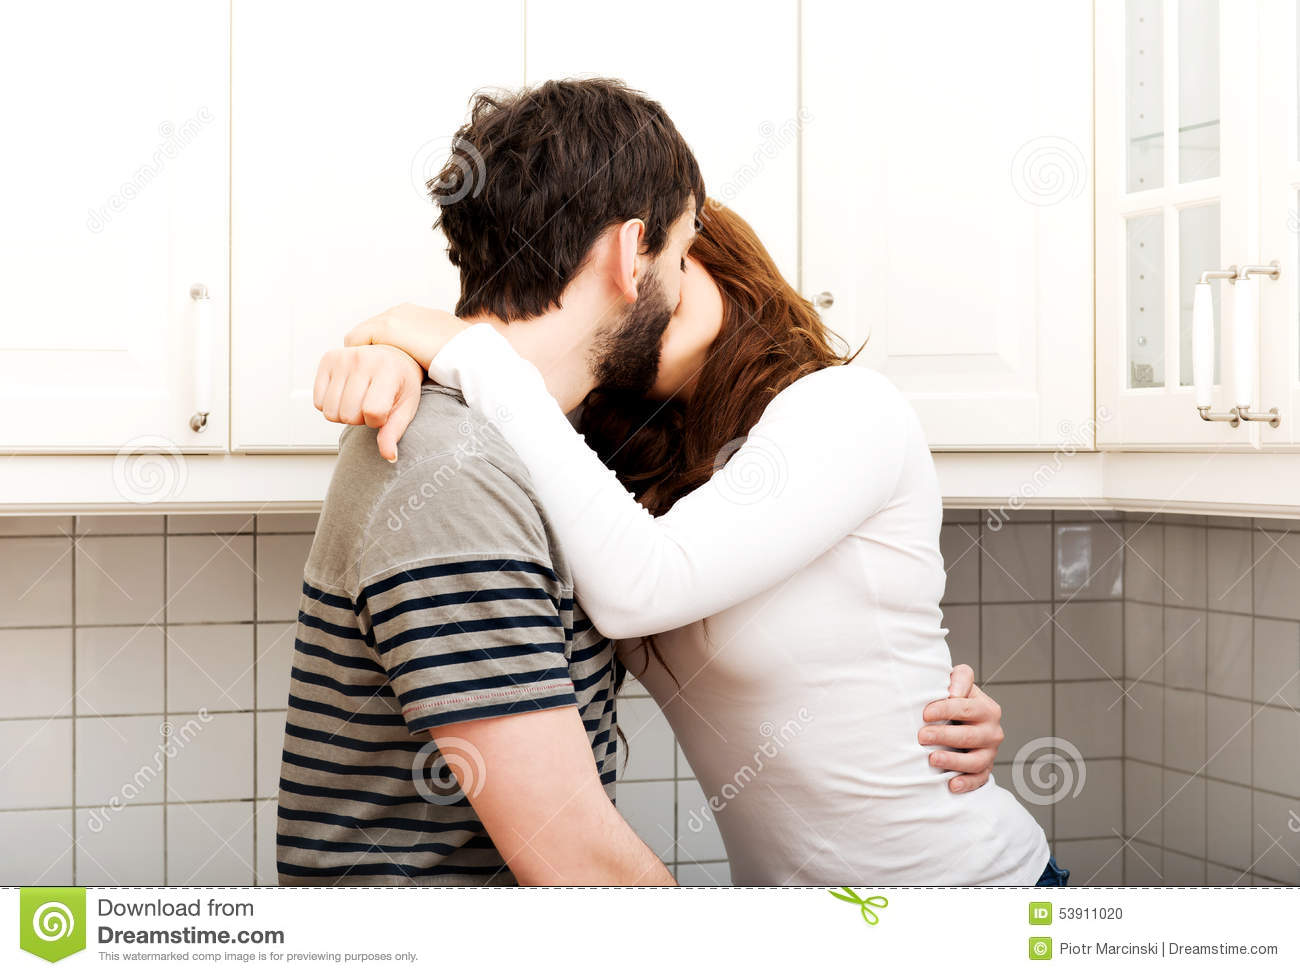 Romantic Couple Kissing In The Kitchen. Stock Photo - Image of ...